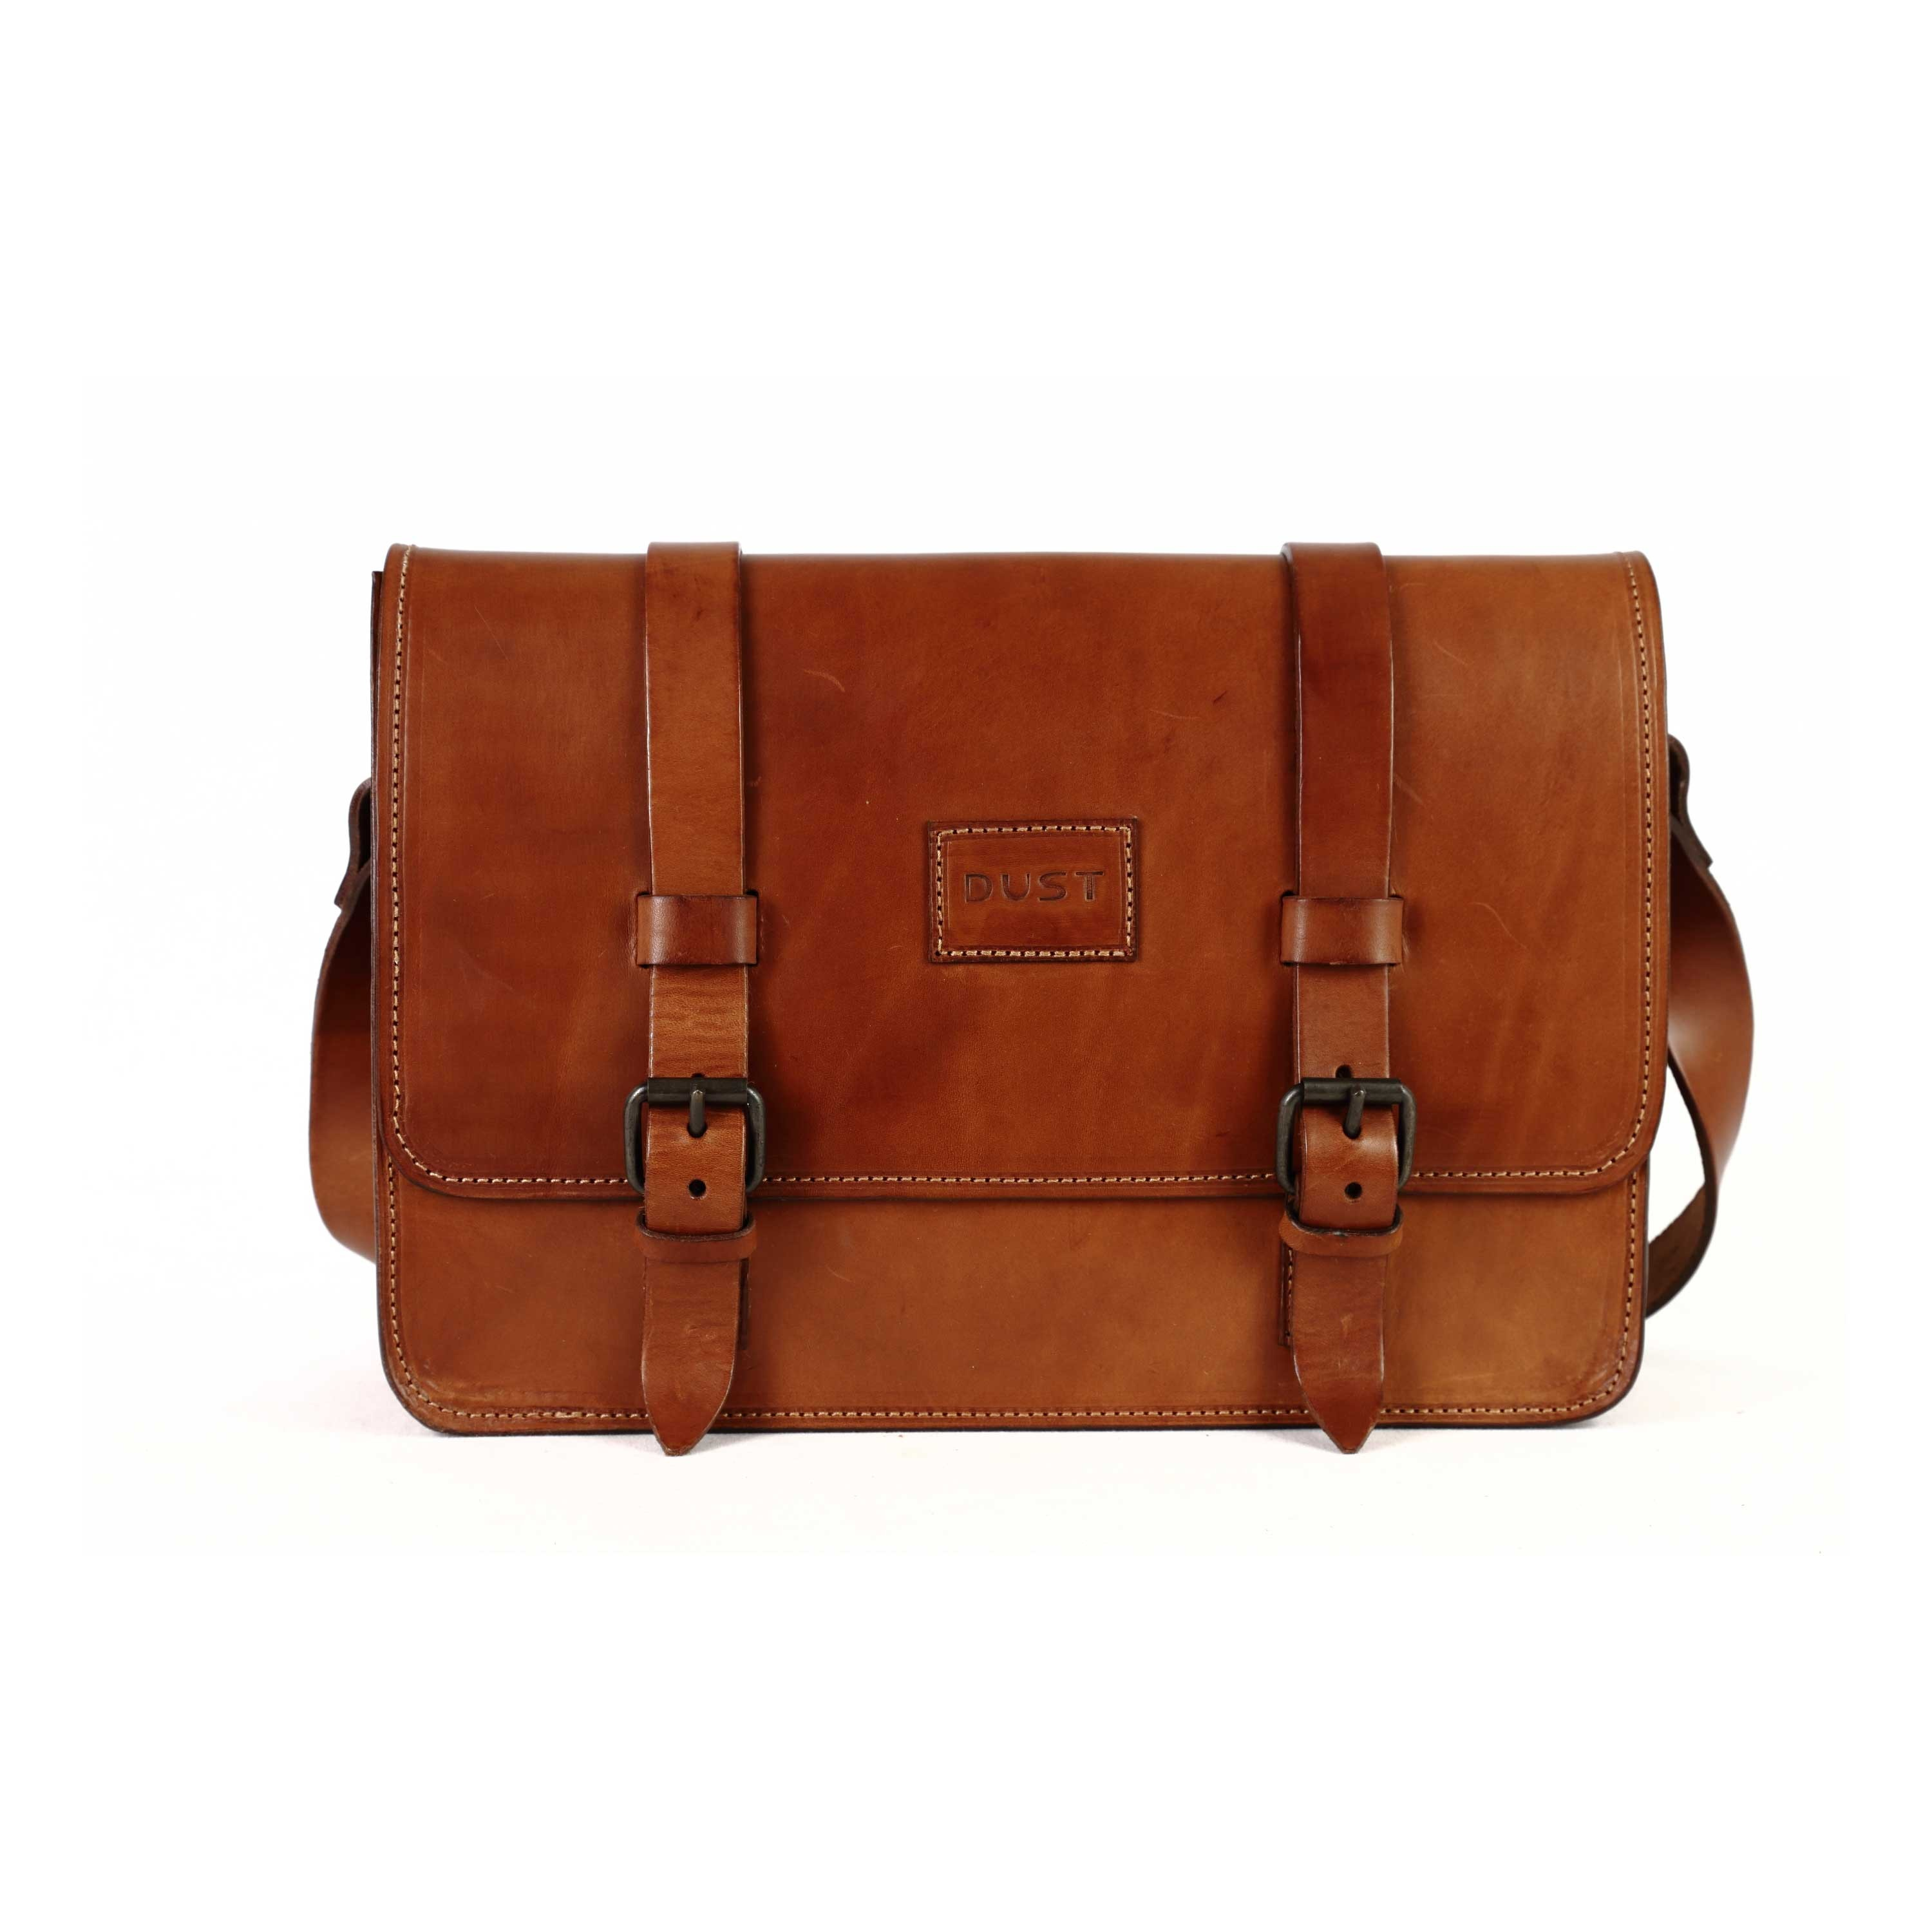 d58834507f Dust Mod. 109 Messenger Bag Men s Shoulder Bag